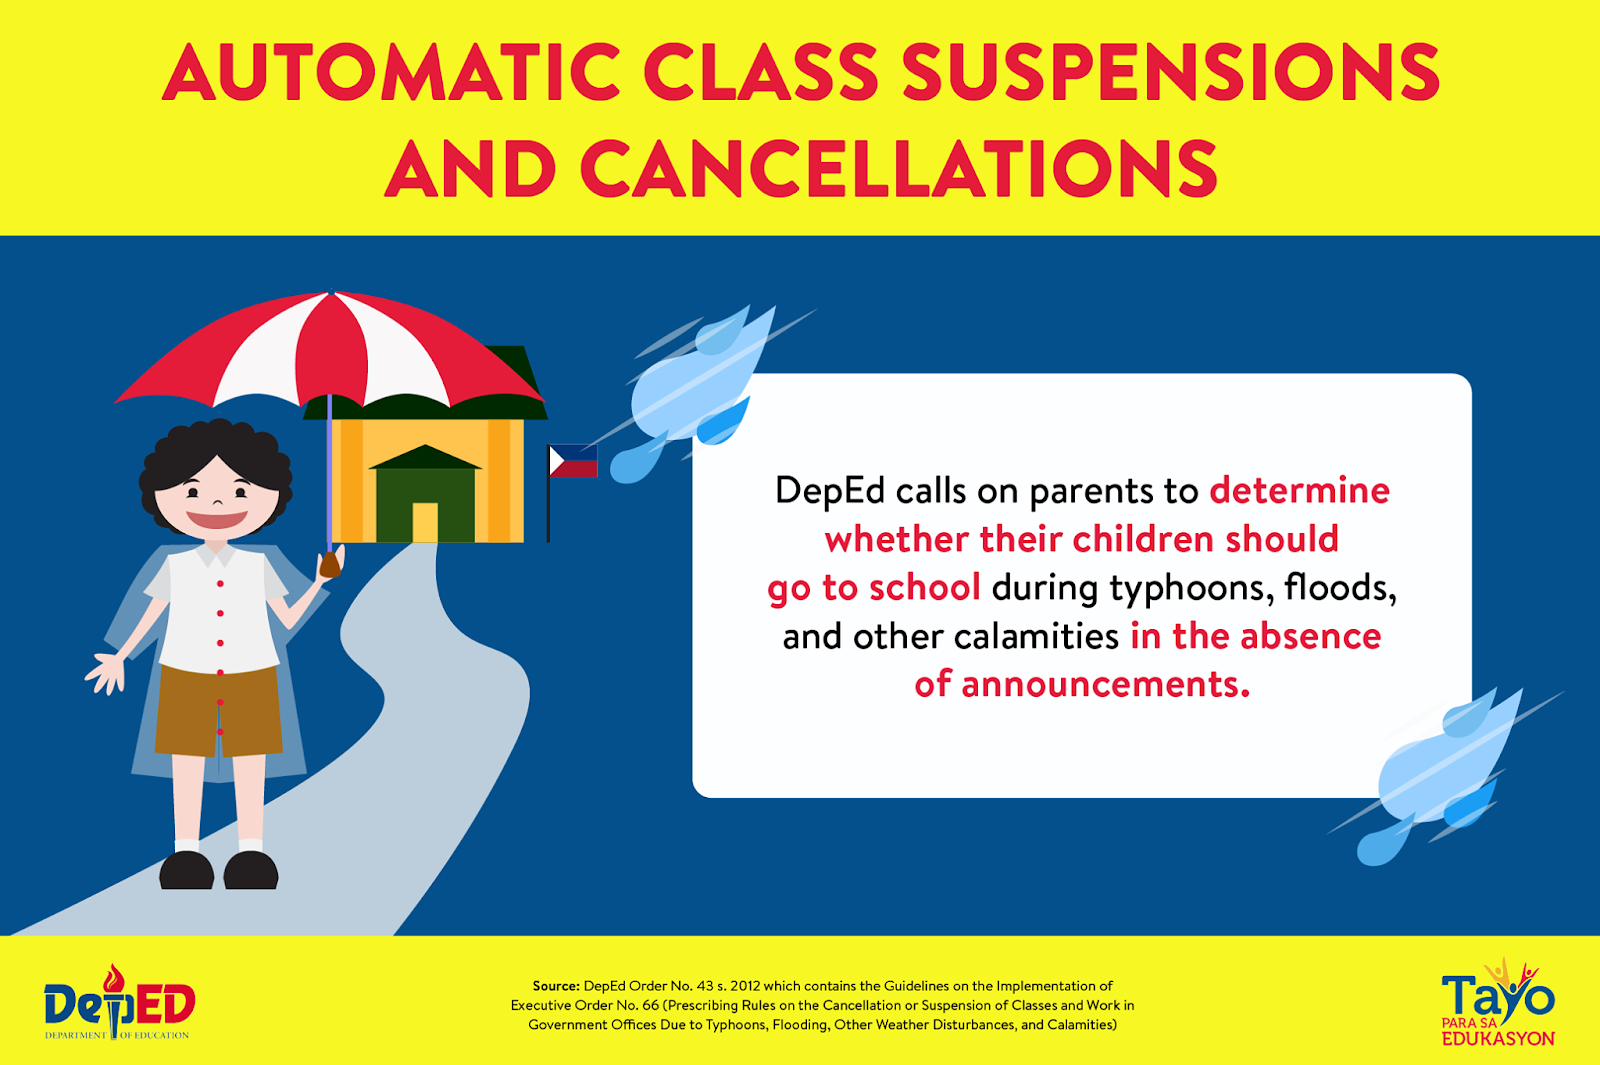 automatic class suspension guideline by DepEd 2018